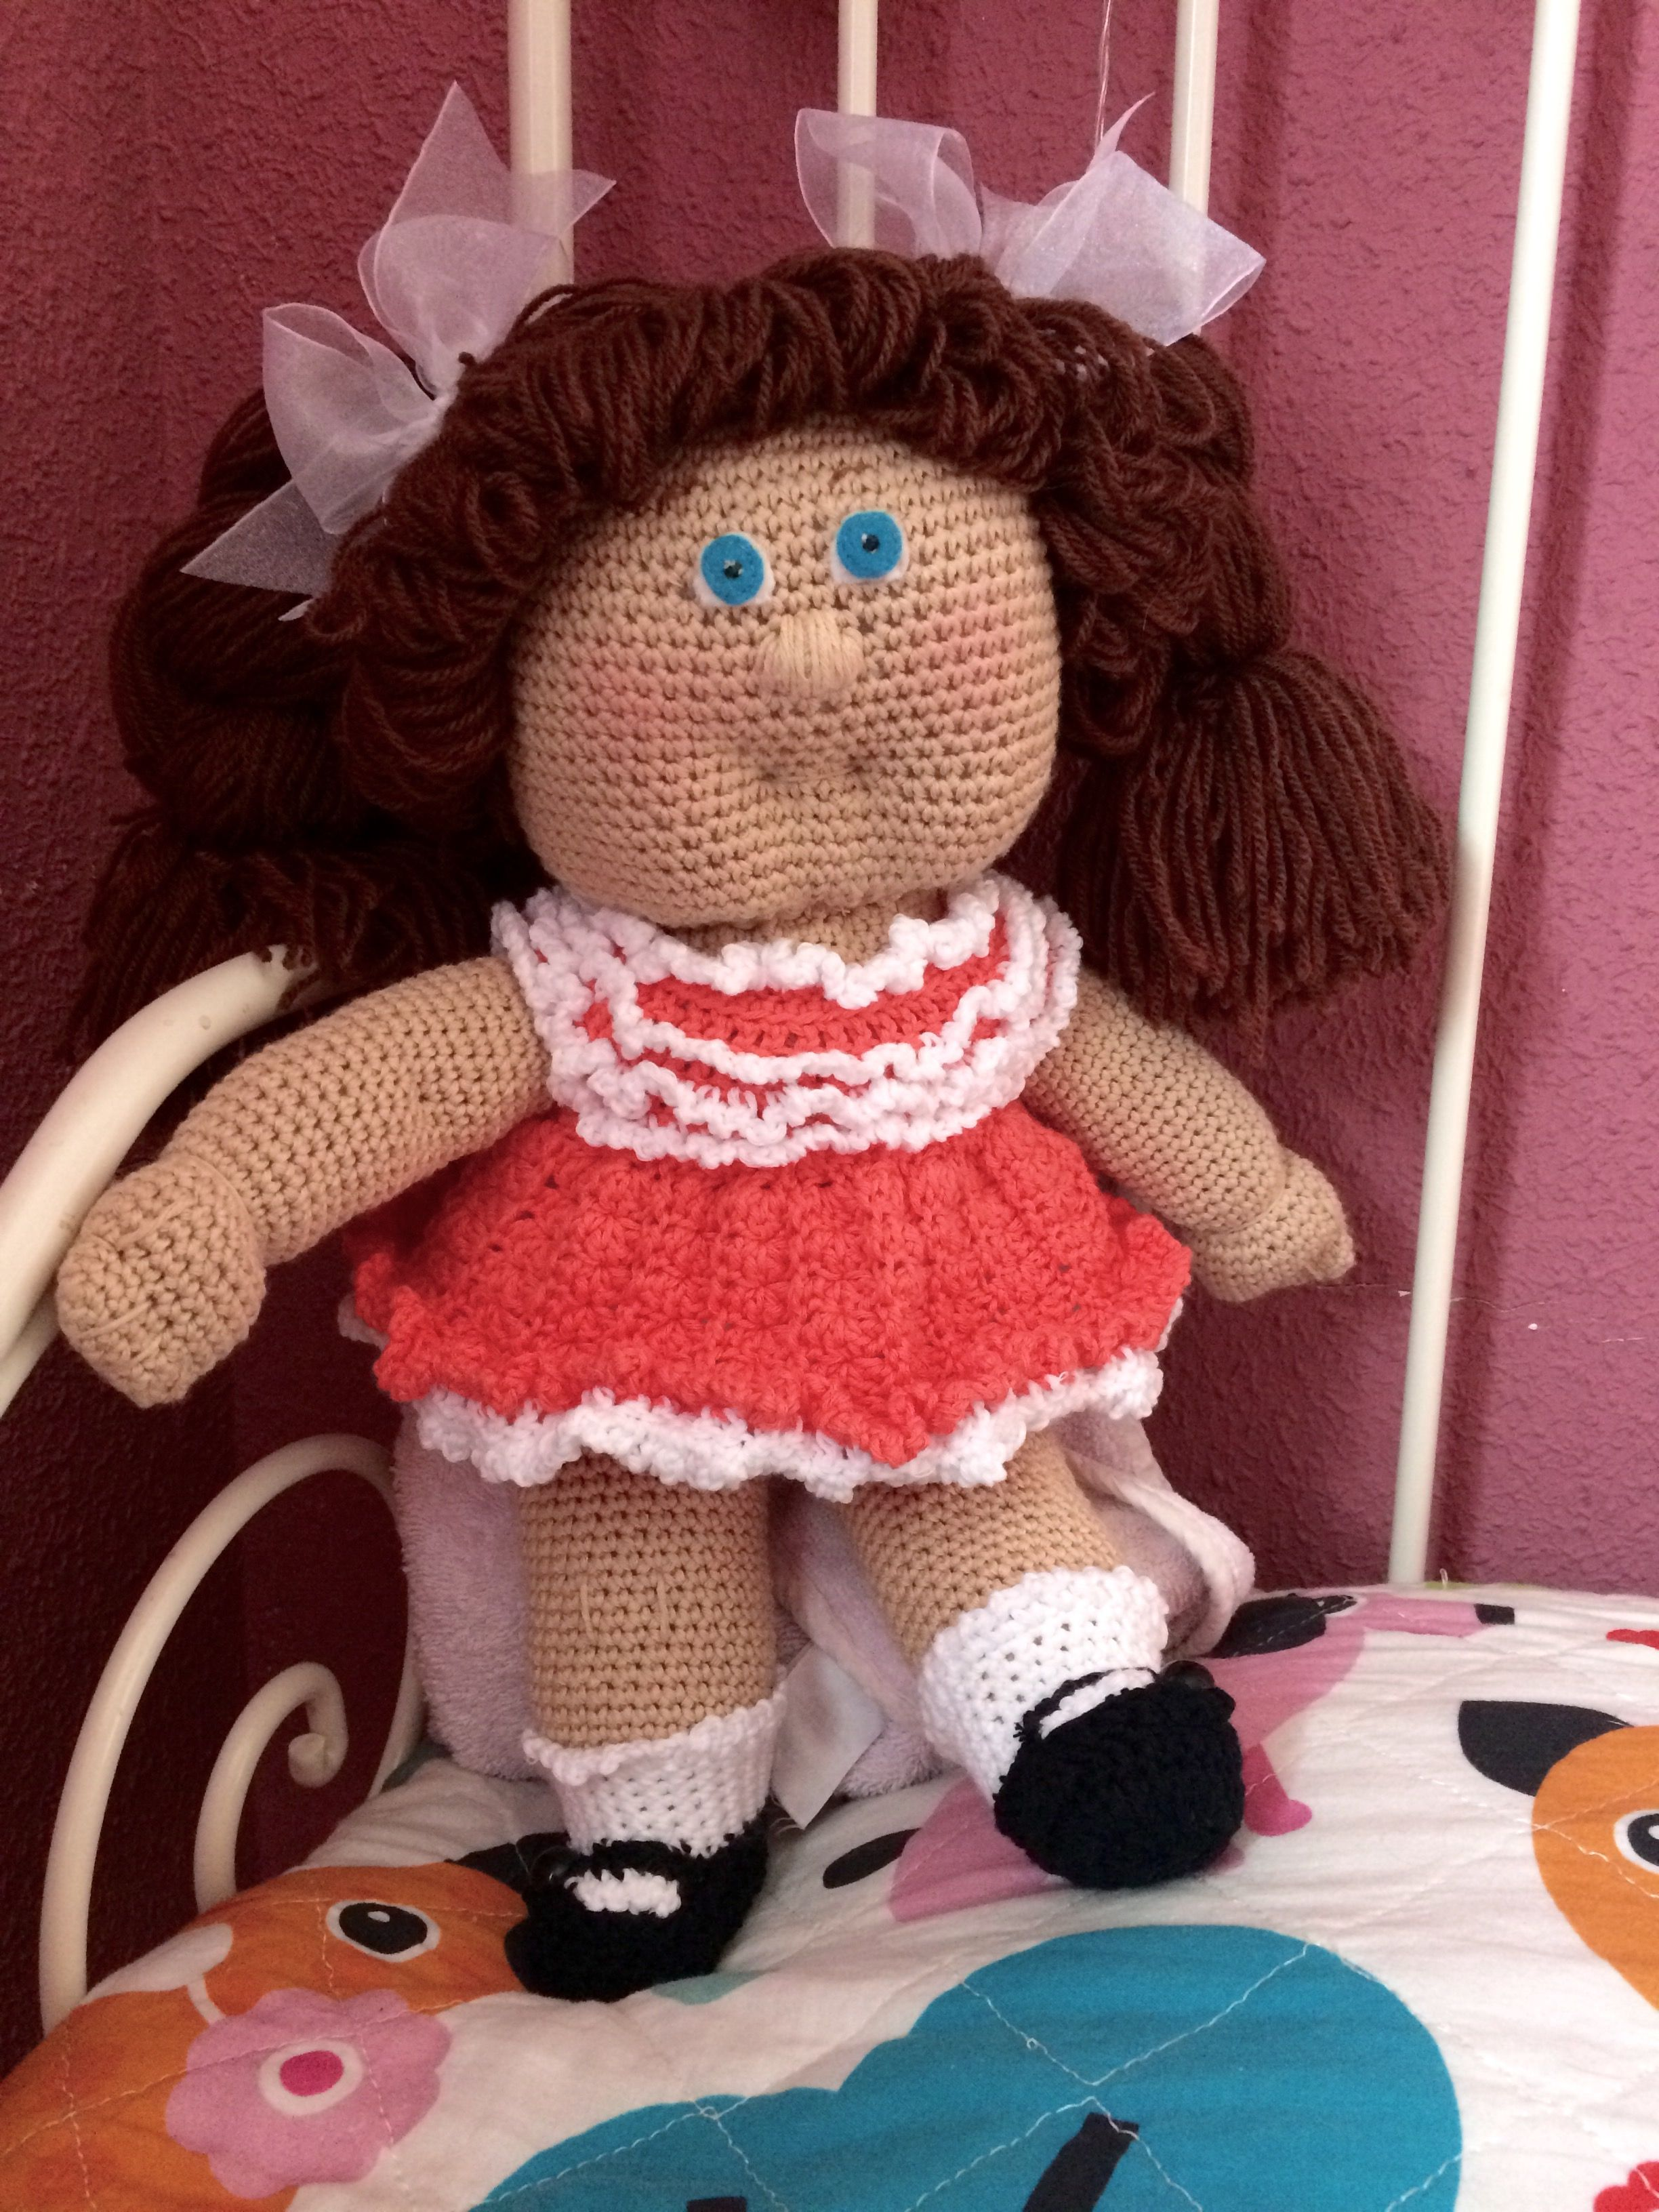 Cabbage patch kids doll crochet amigurumi | Crochet I Like - Care ...